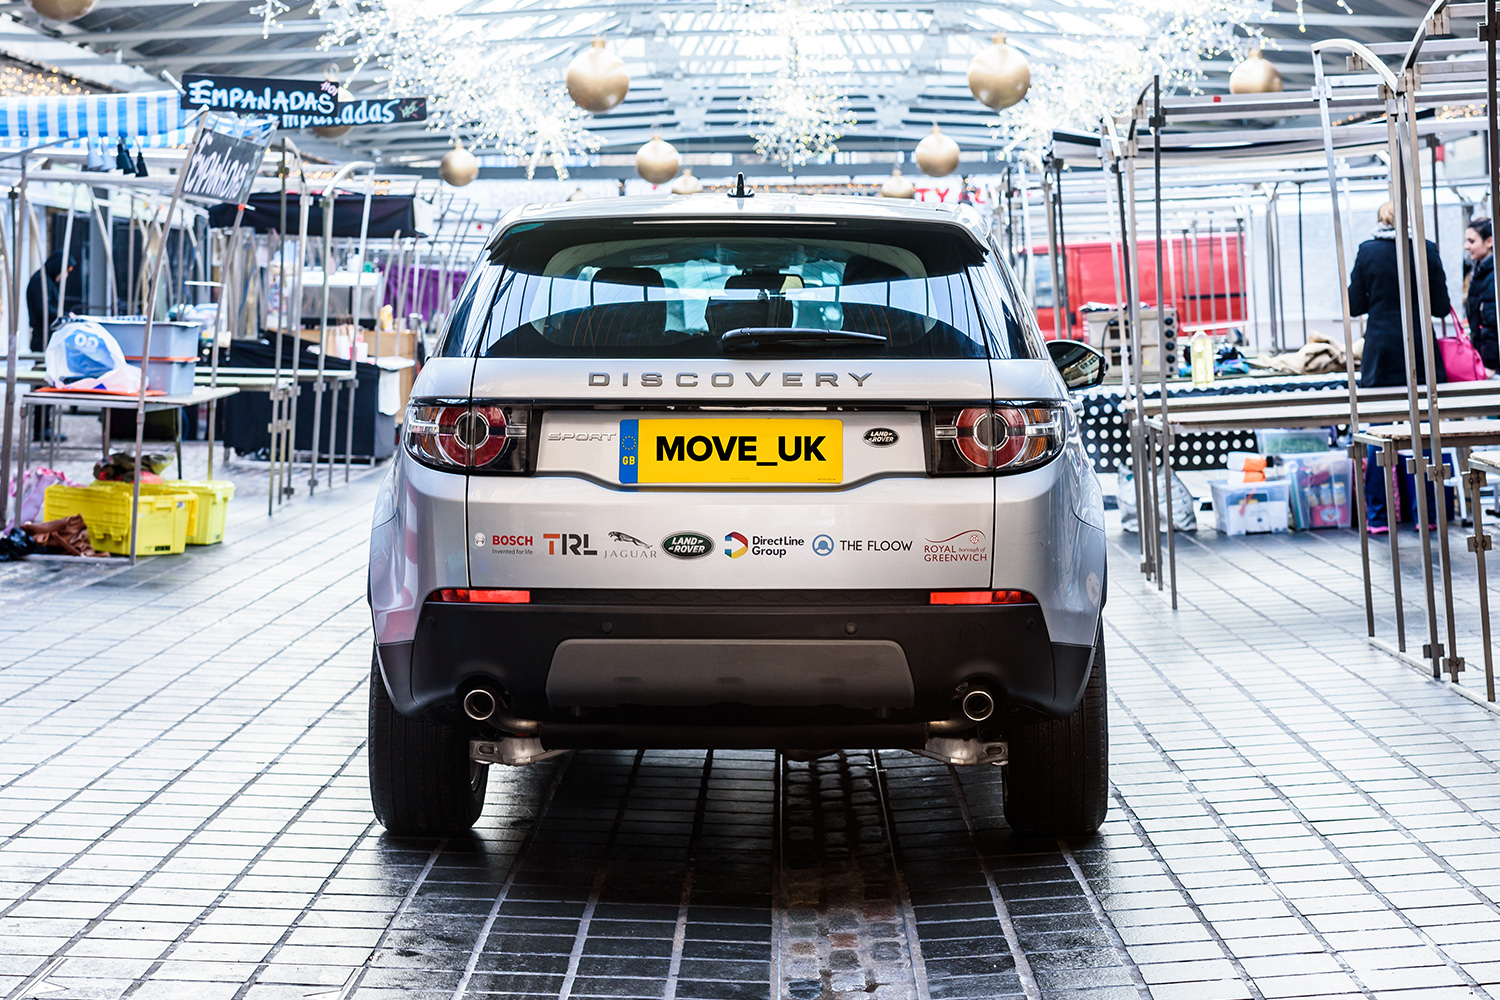 MOVE_UK: Consortium of Automotive Companies Win £5.5m Fund to Trial Driverless Cars on UK Roads